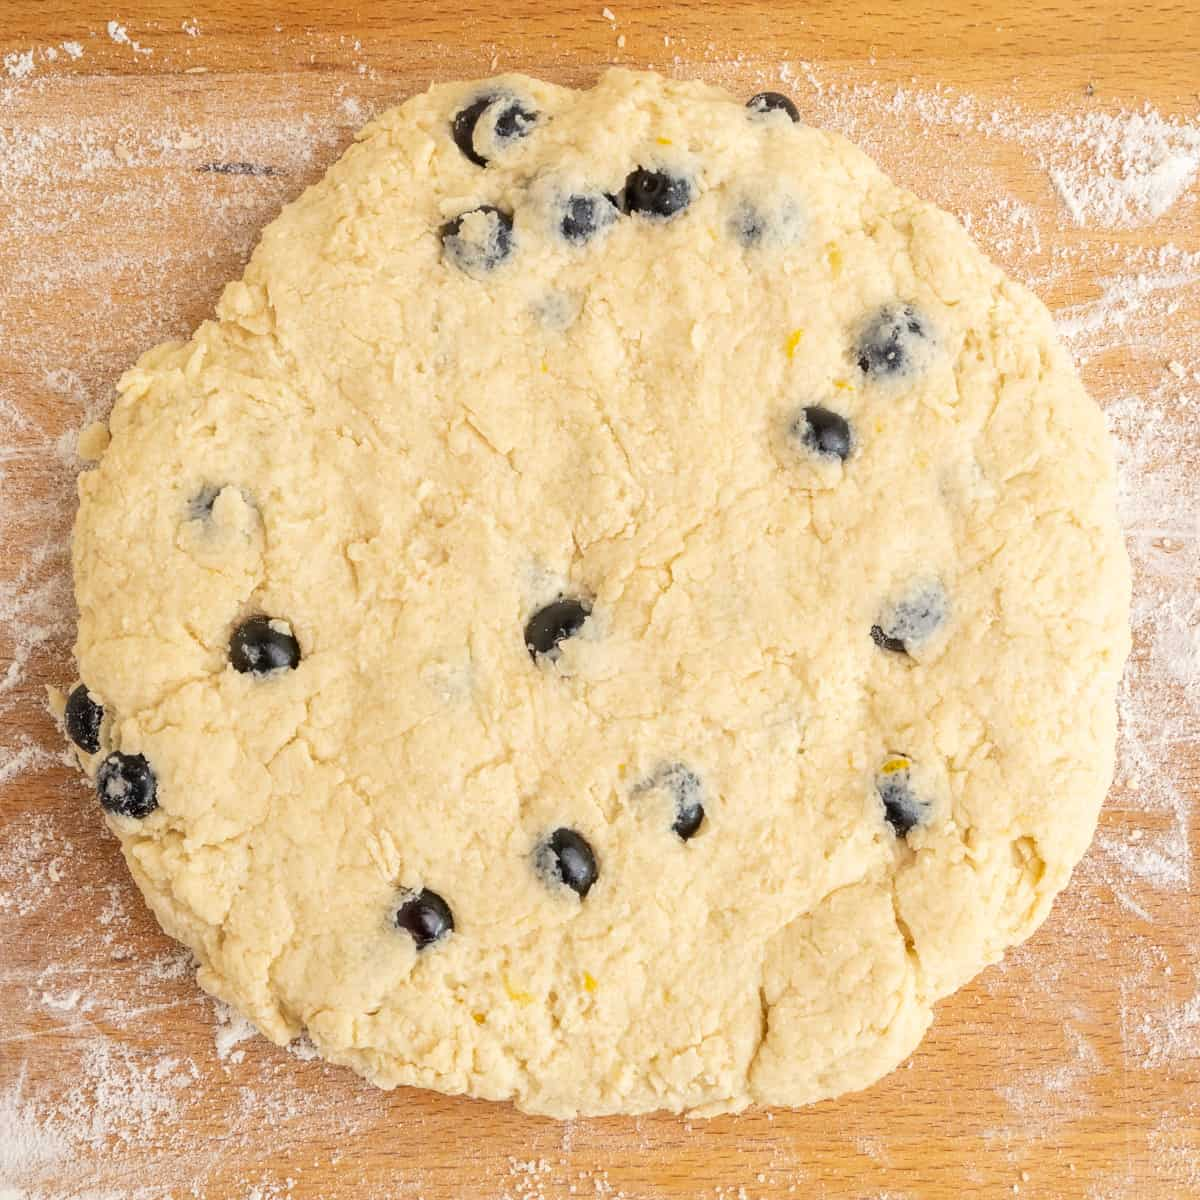 The blueberry scone dough formed into a disc on a lightly floured wooden board.